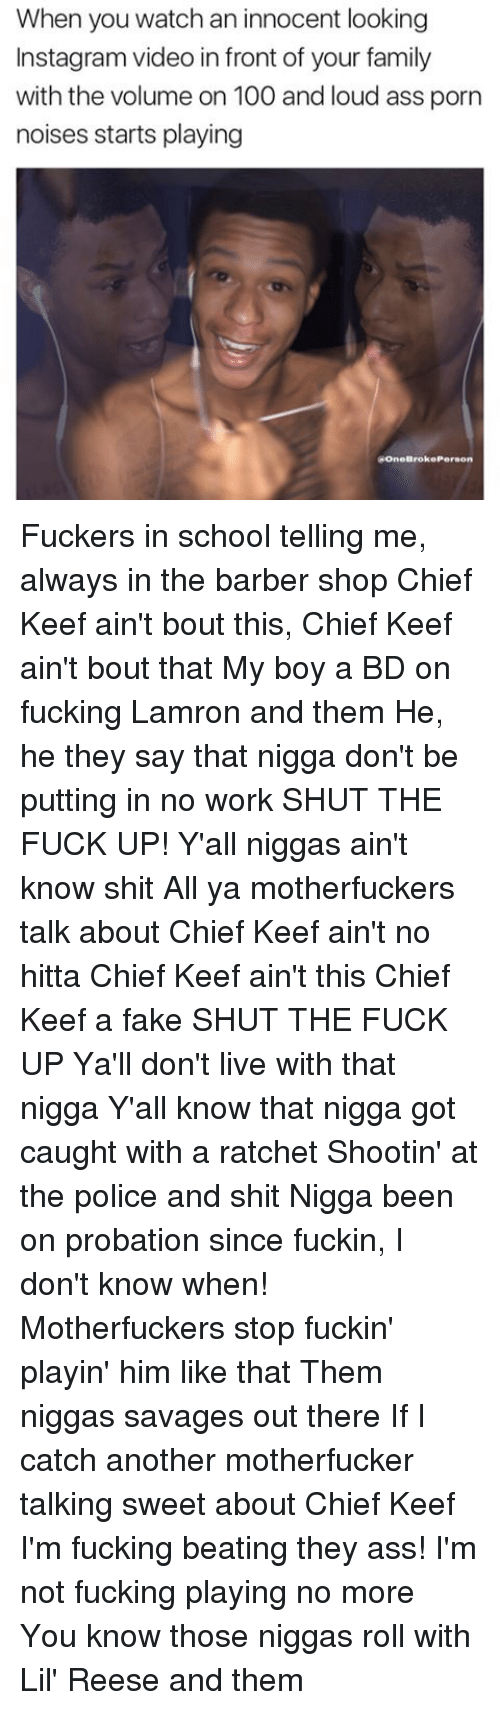 Keefs: When you watch an innocent looking  Instagramvideo in front of your family  with the volume on 100 and loud ass porn  noises starts playing  ROneBroke Person Fuckers in school telling me, always in the barber shop Chief Keef ain't bout this, Chief Keef ain't bout that My boy a BD on fucking Lamron and them He, he they say that nigga don't be putting in no work SHUT THE FUCK UP! Y'all niggas ain't know shit All ya motherfuckers talk about Chief Keef ain't no hitta Chief Keef ain't this Chief Keef a fake SHUT THE FUCK UP Ya'll don't live with that nigga Y'all know that nigga got caught with a ratchet Shootin' at the police and shit Nigga been on probation since fuckin, I don't know when! Motherfuckers stop fuckin' playin' him like that Them niggas savages out there If I catch another motherfucker talking sweet about Chief Keef I'm fucking beating they ass! I'm not fucking playing no more You know those niggas roll with Lil' Reese and them